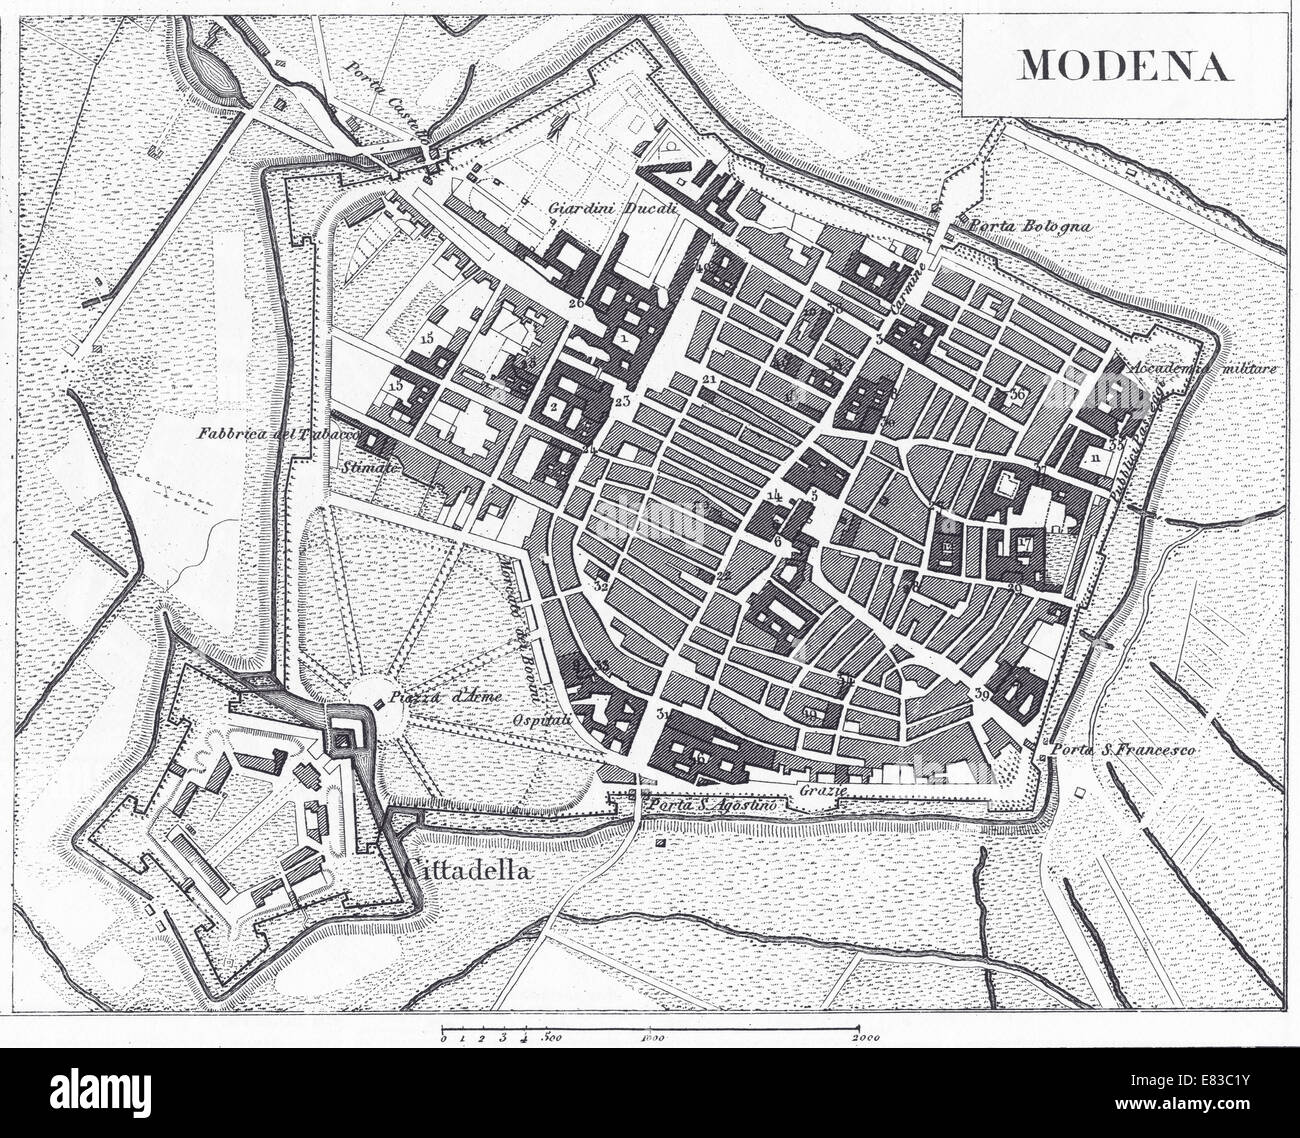 Engraved illustrations of the Map of Modena, Italy from Iconographic Encyclopedia of Science, Literature and Art, - Stock Image